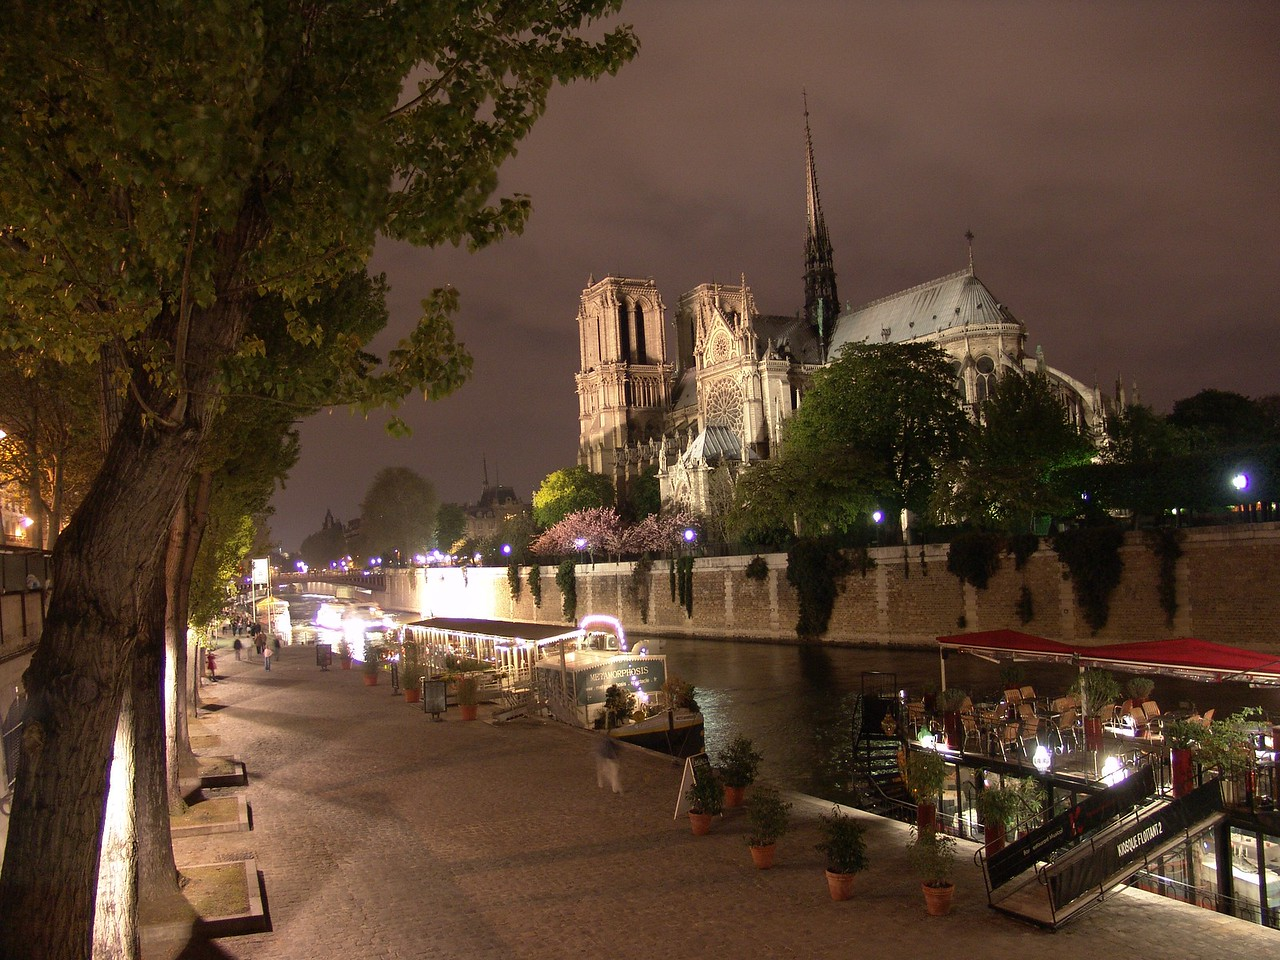 NDex1: Can you guess what these lit boats are doing here on the river parked across from the cathedral?? Answer: They are fancy restaurants for elegant and romantic dining.